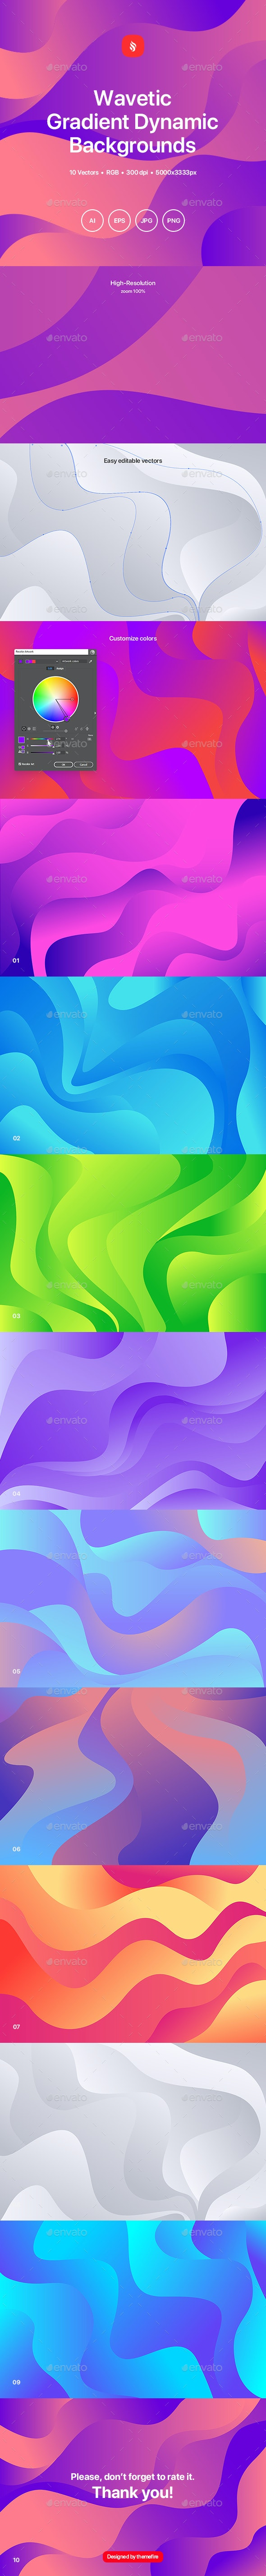 Wavetic - Abstract Gradient Dynamic Backgrounds - Abstract Backgrounds